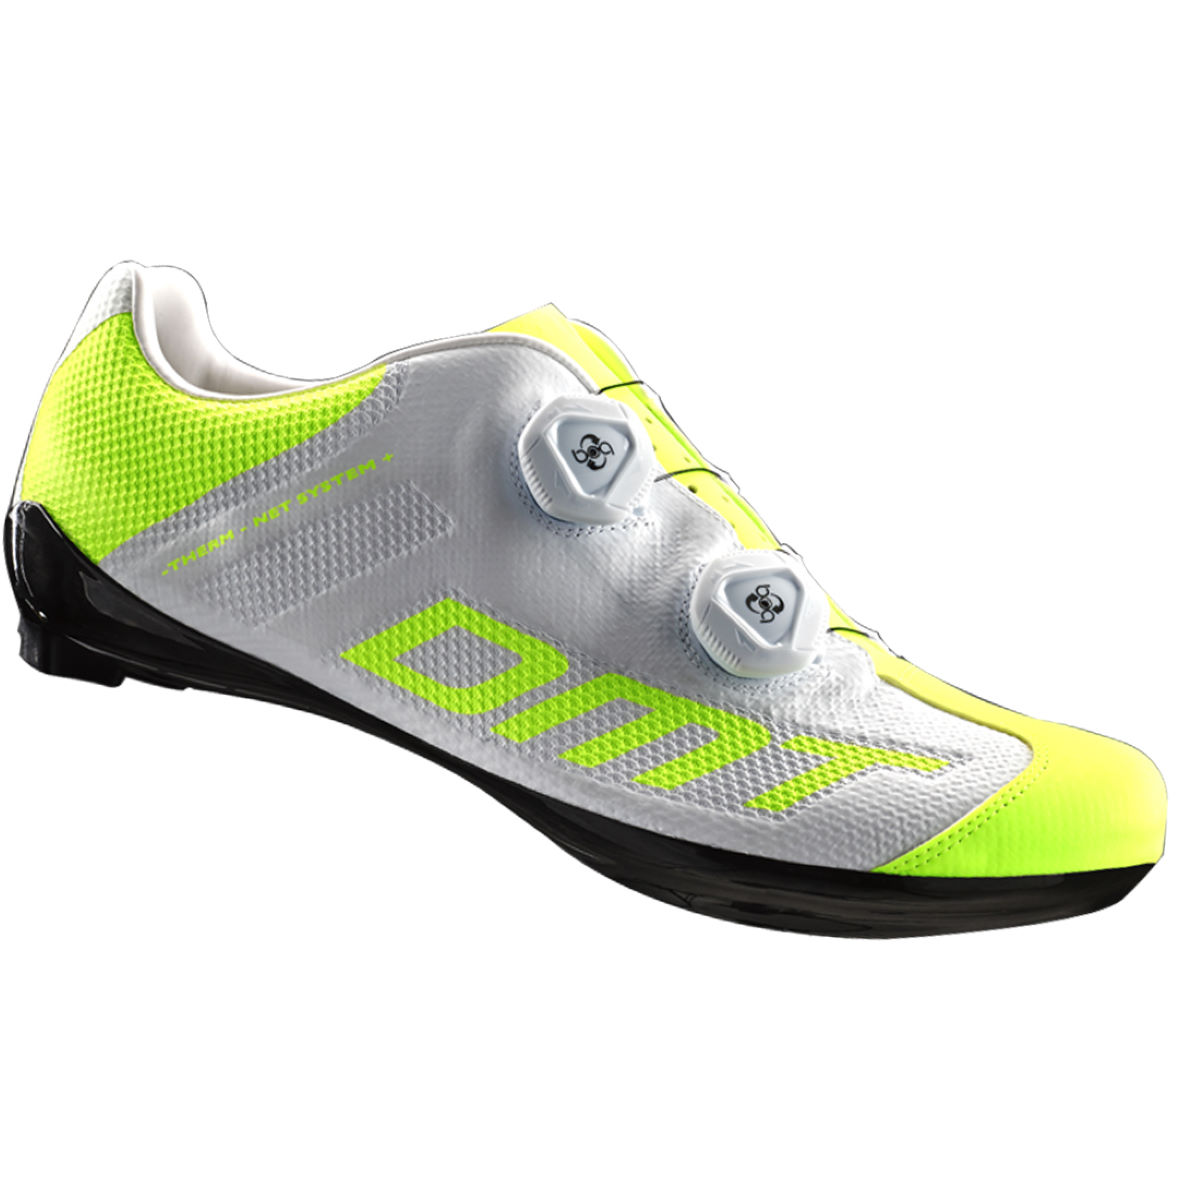 DMT R1S Road Shoe - 44.5 White/Yellow | Road Shoes